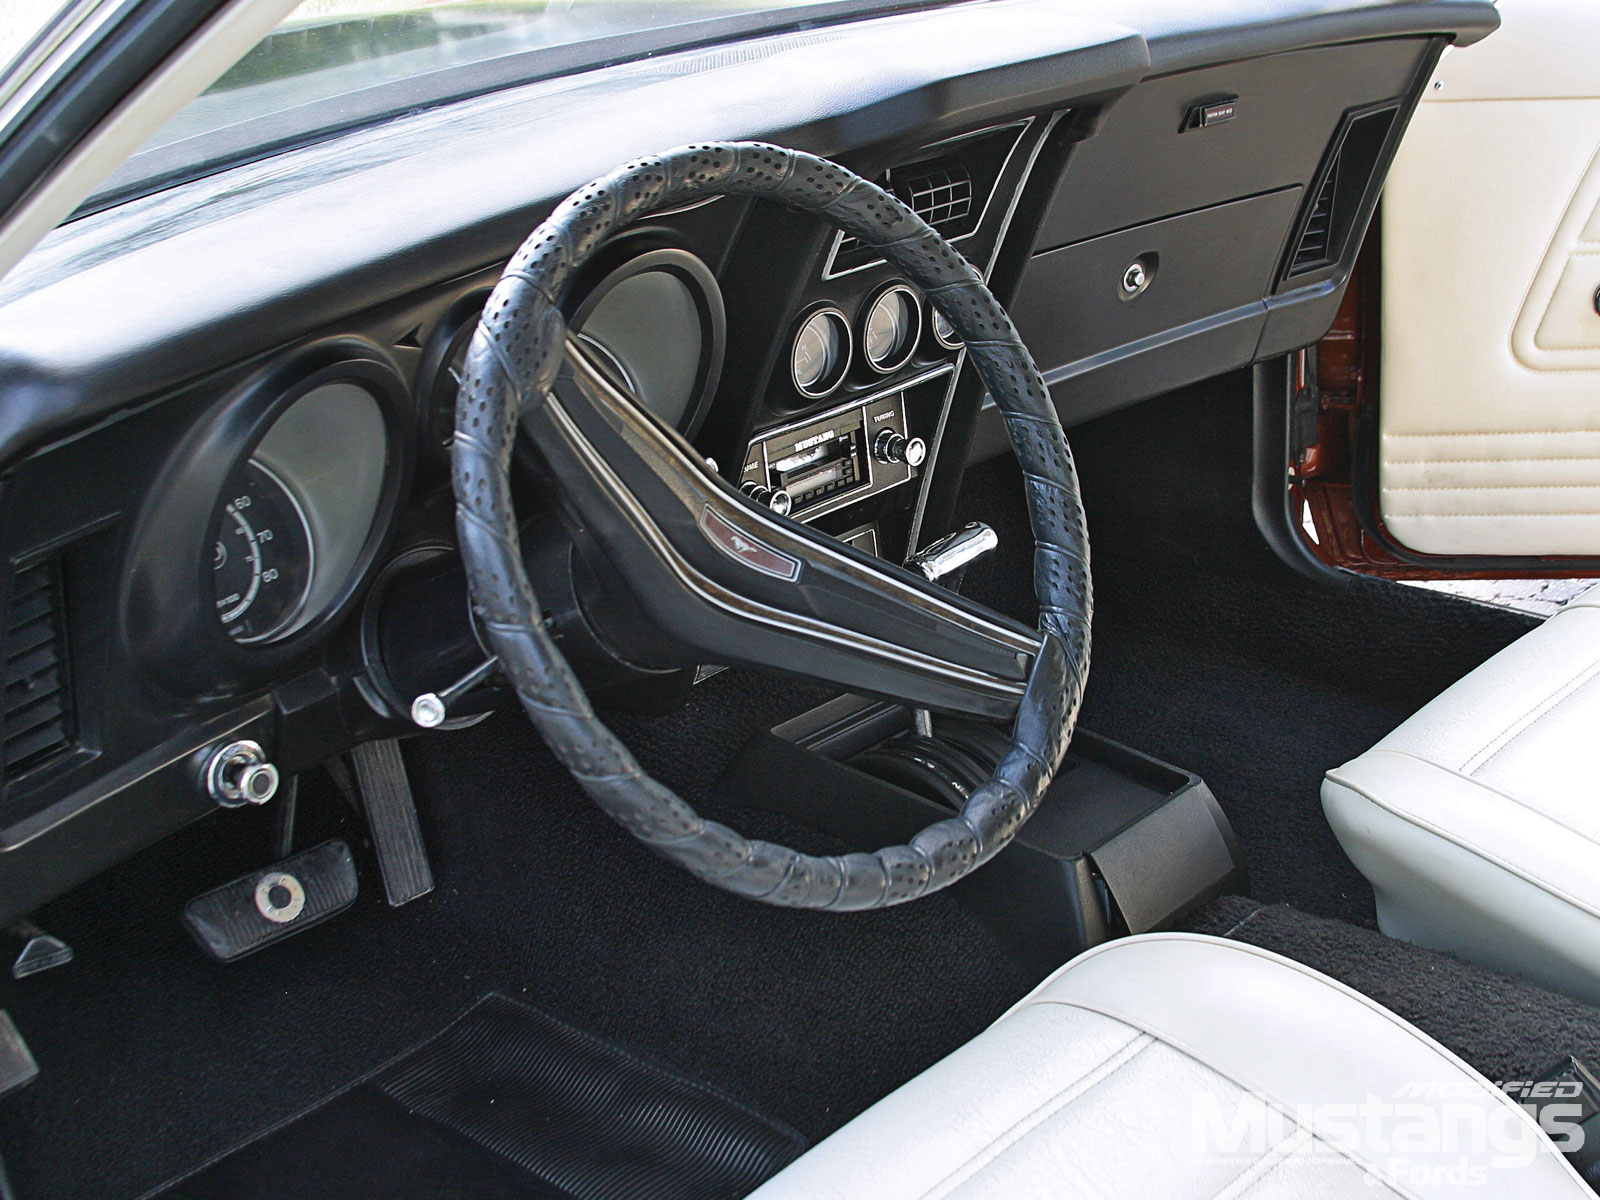 1973 Mach 1 Steering Wheel